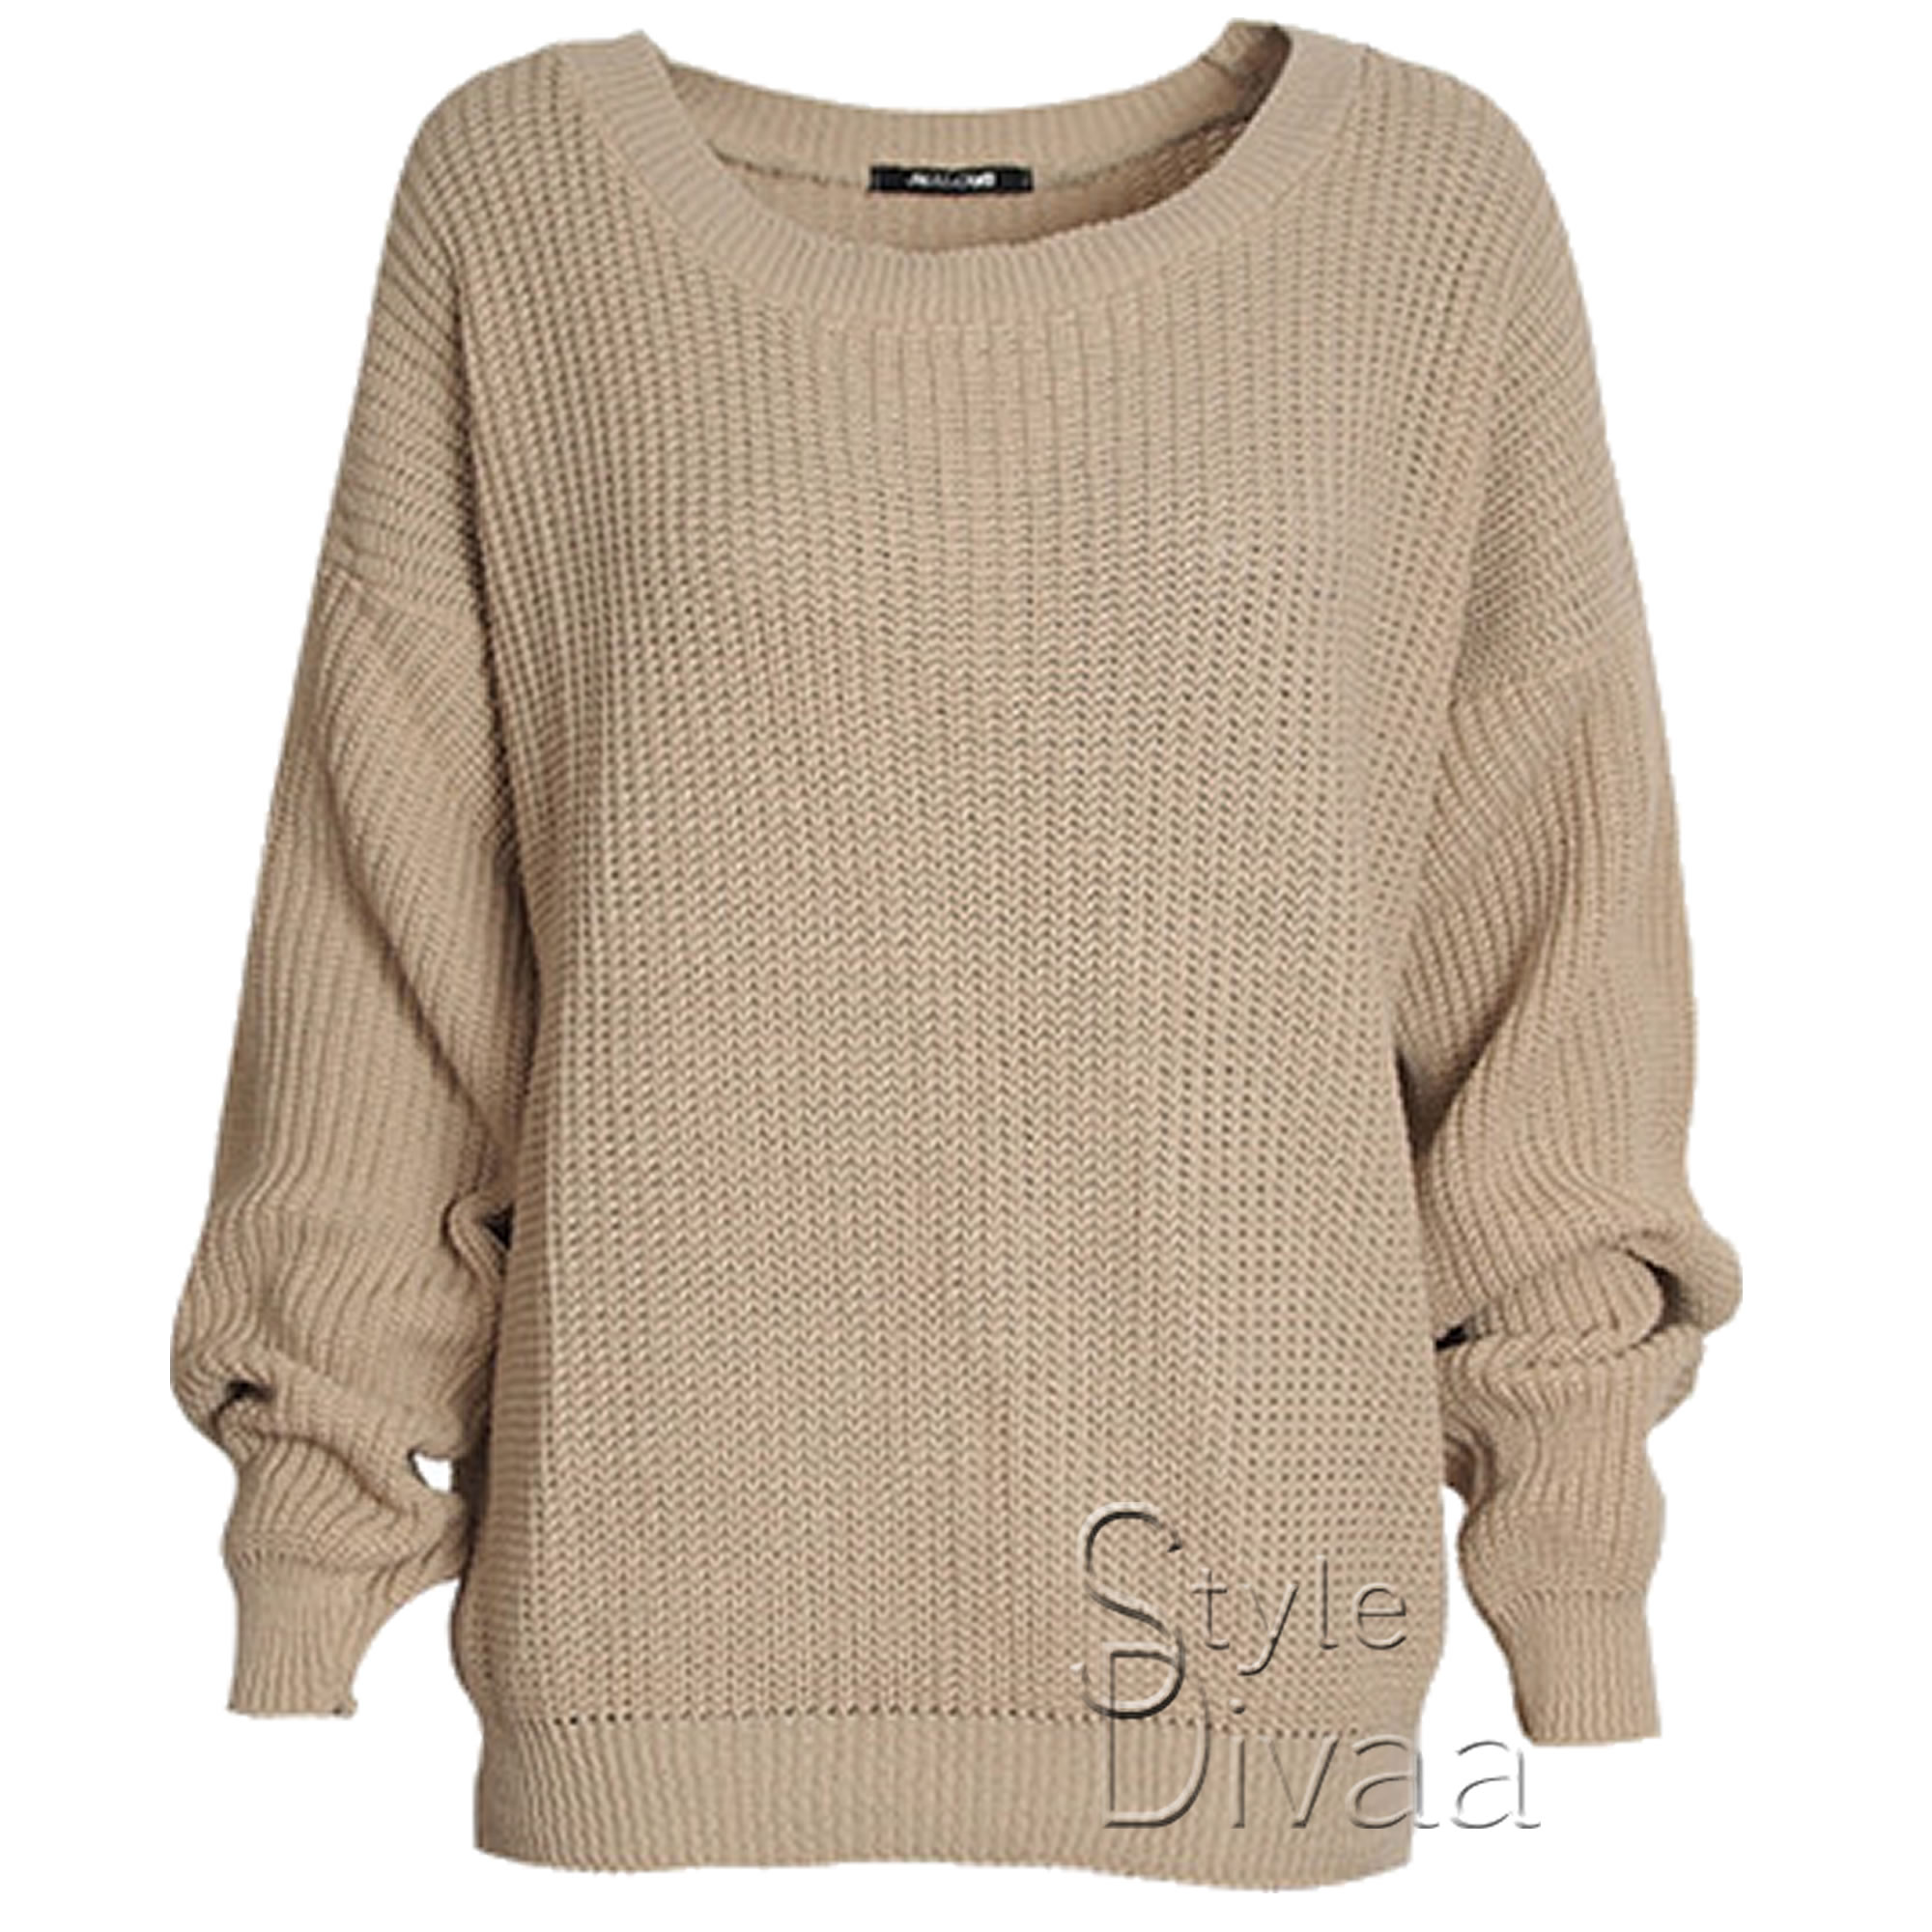 Oversized Baggy Jumper Knitted Womens Sweater Chunky Knit Top ...